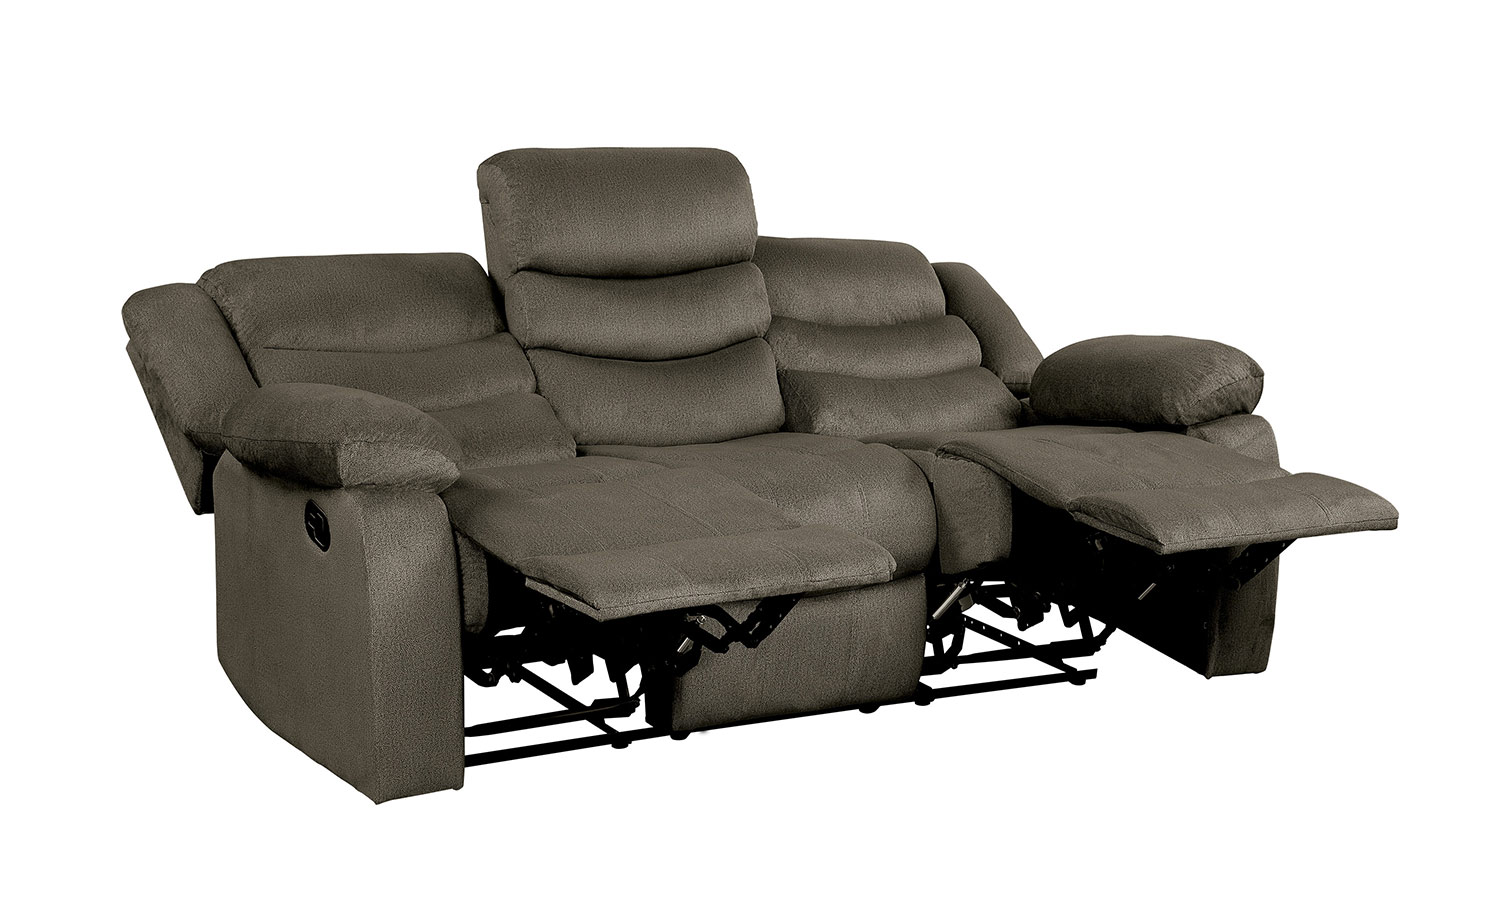 Homelegance Discus Double Reclining Sofa - Brown